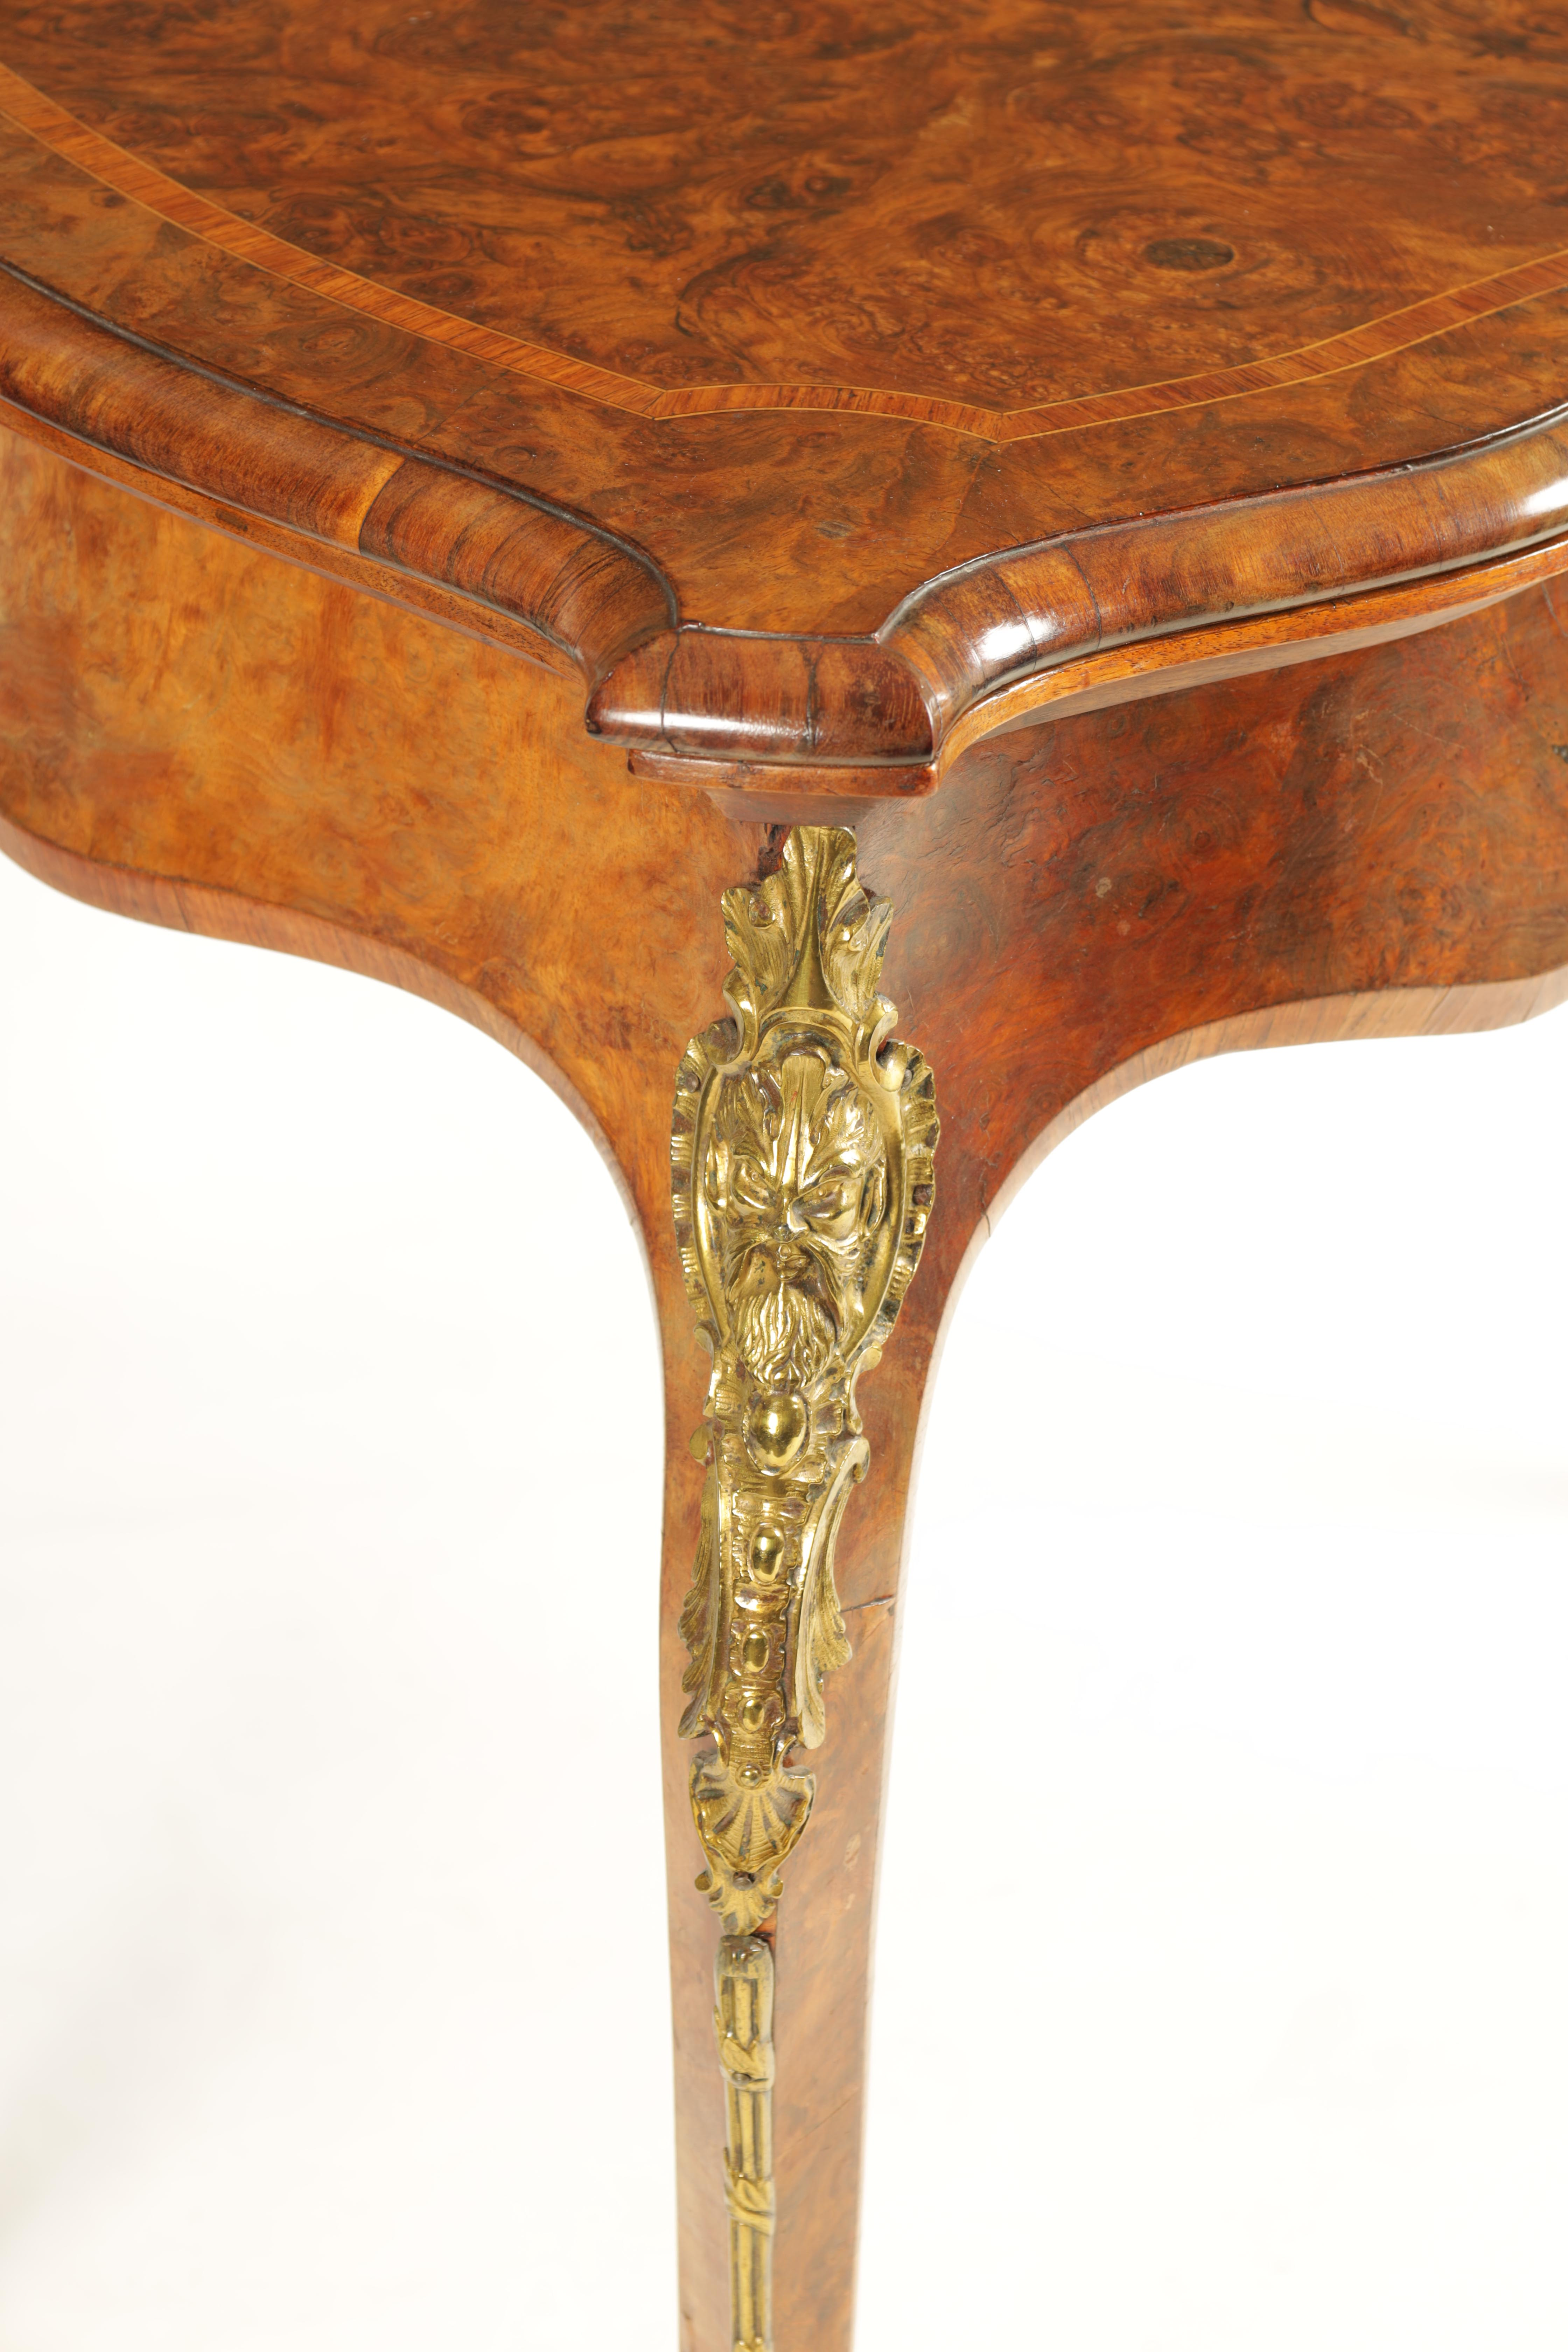 A 19TH CENTURY FRENCH KINGWOOD CROSS-BANDED BURR WALNUT SERPENTINE CARD TABLE with ormolu mounts and - Image 2 of 13